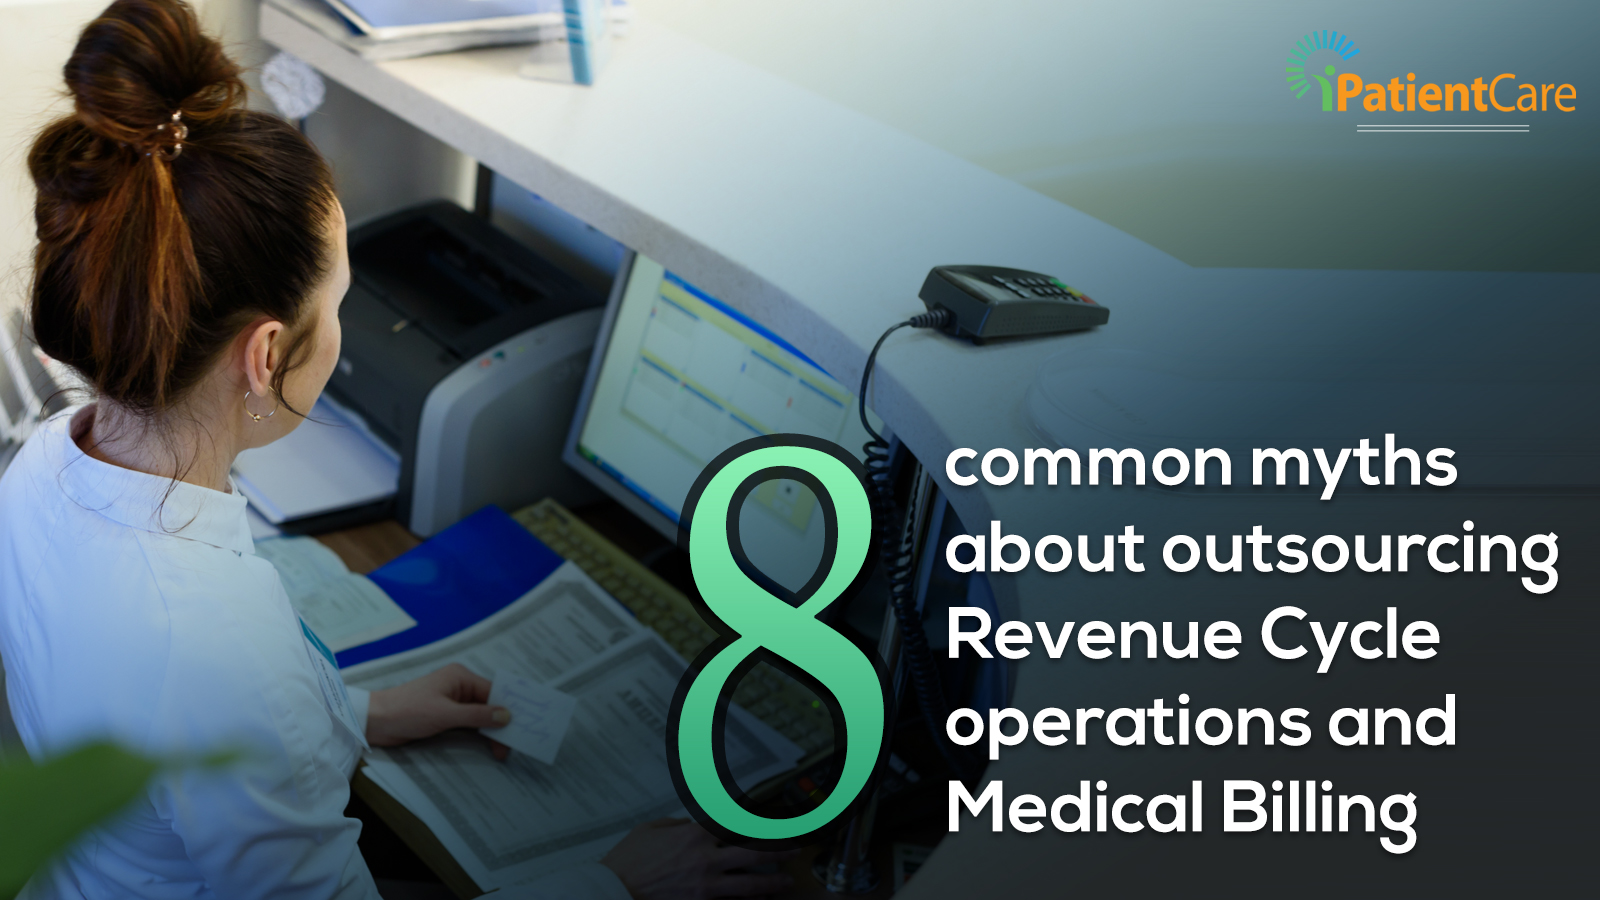 iPatientCare Blog - 8 common myths about outsourcing RCM